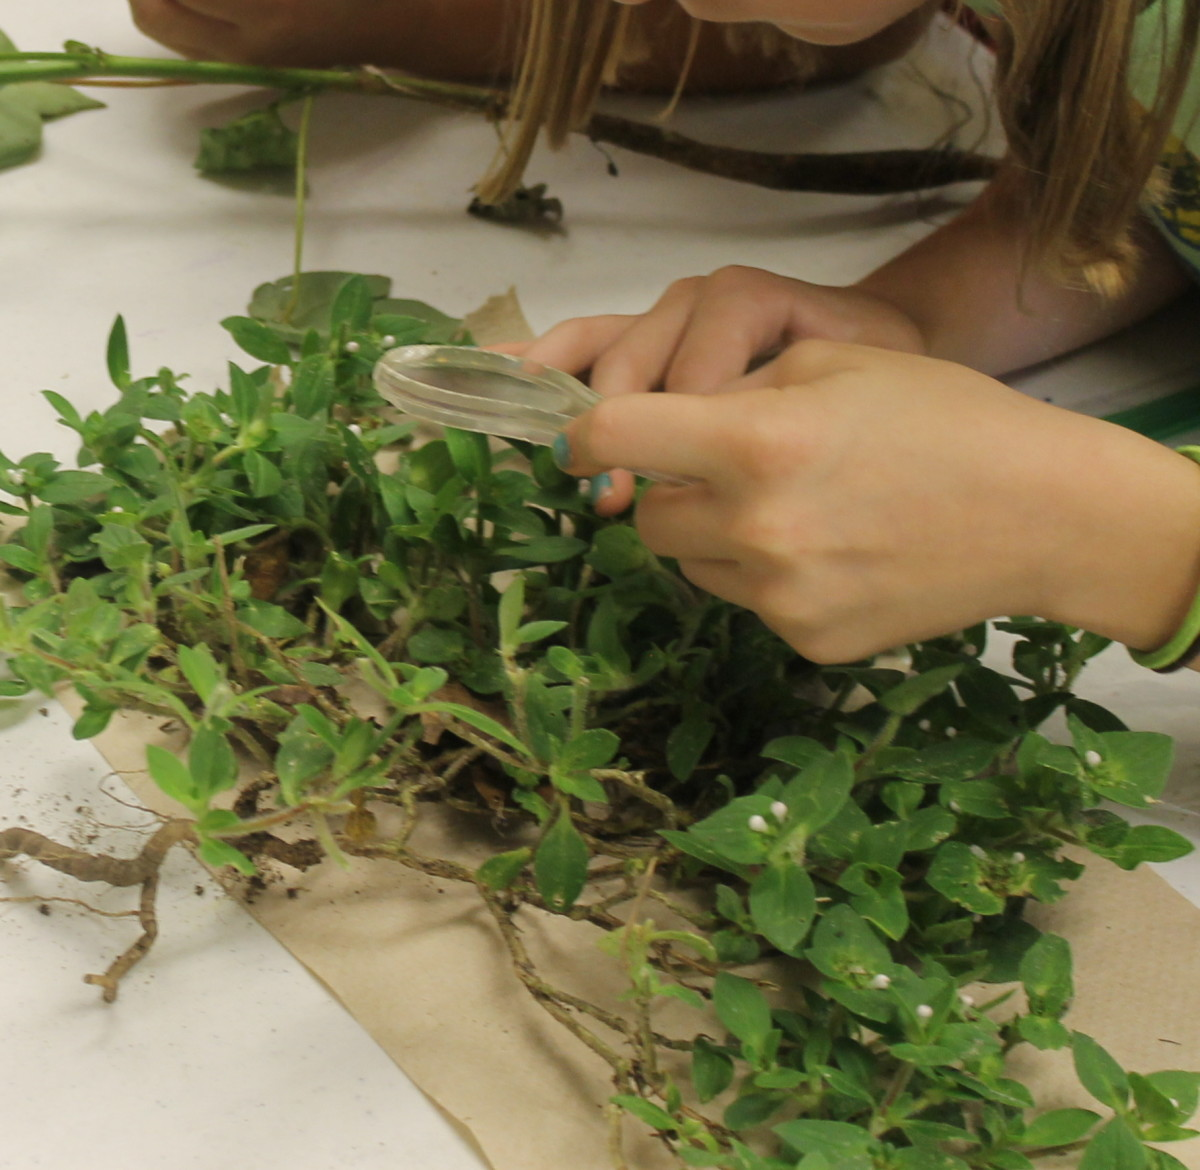 Observing Stems